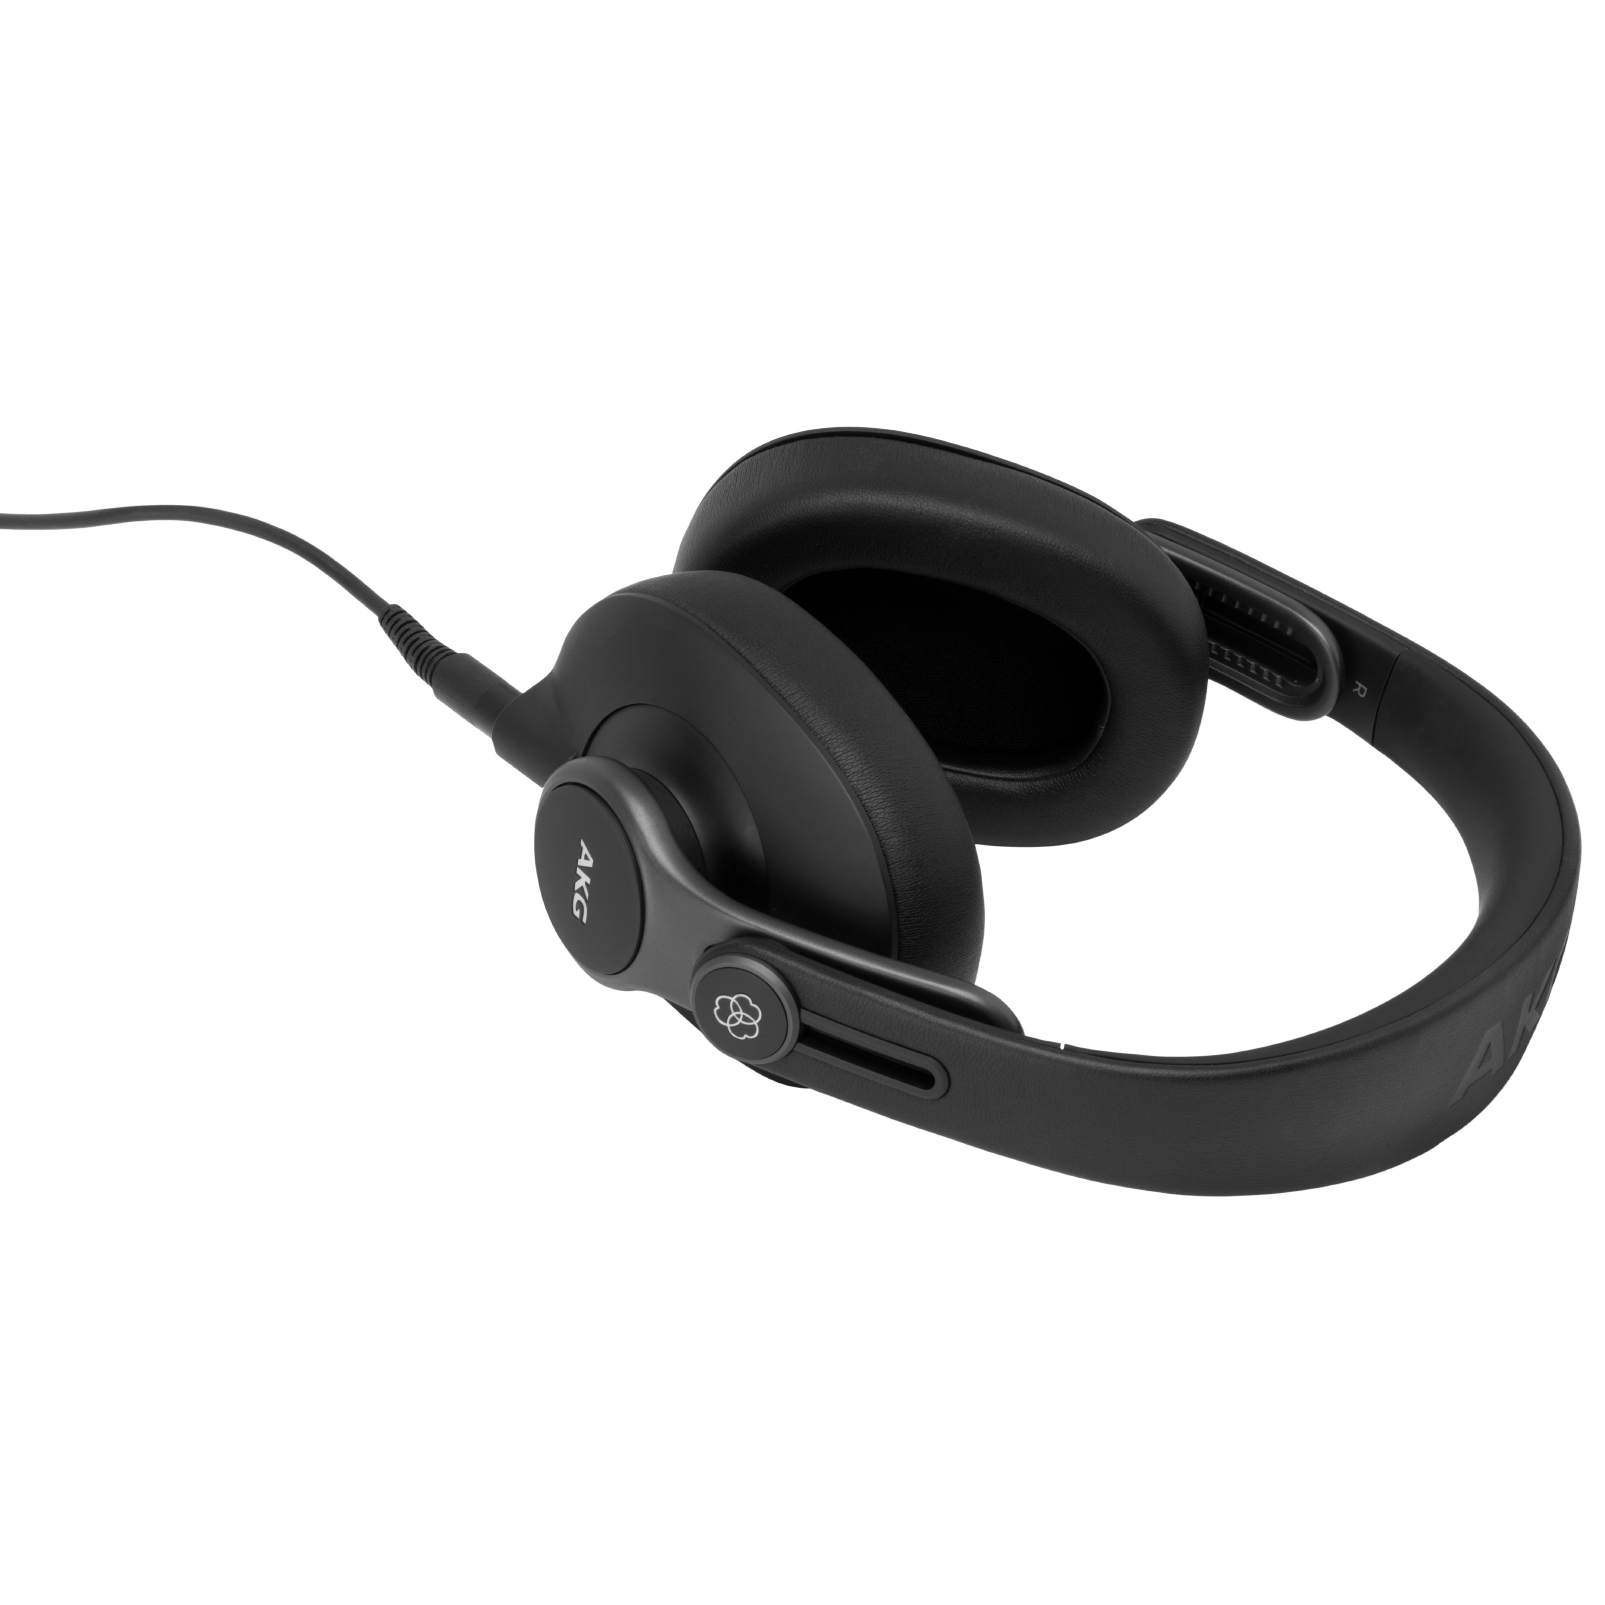 K371 - Black - Over-ear, closed-back, foldable studio headphones - Detailshot 3